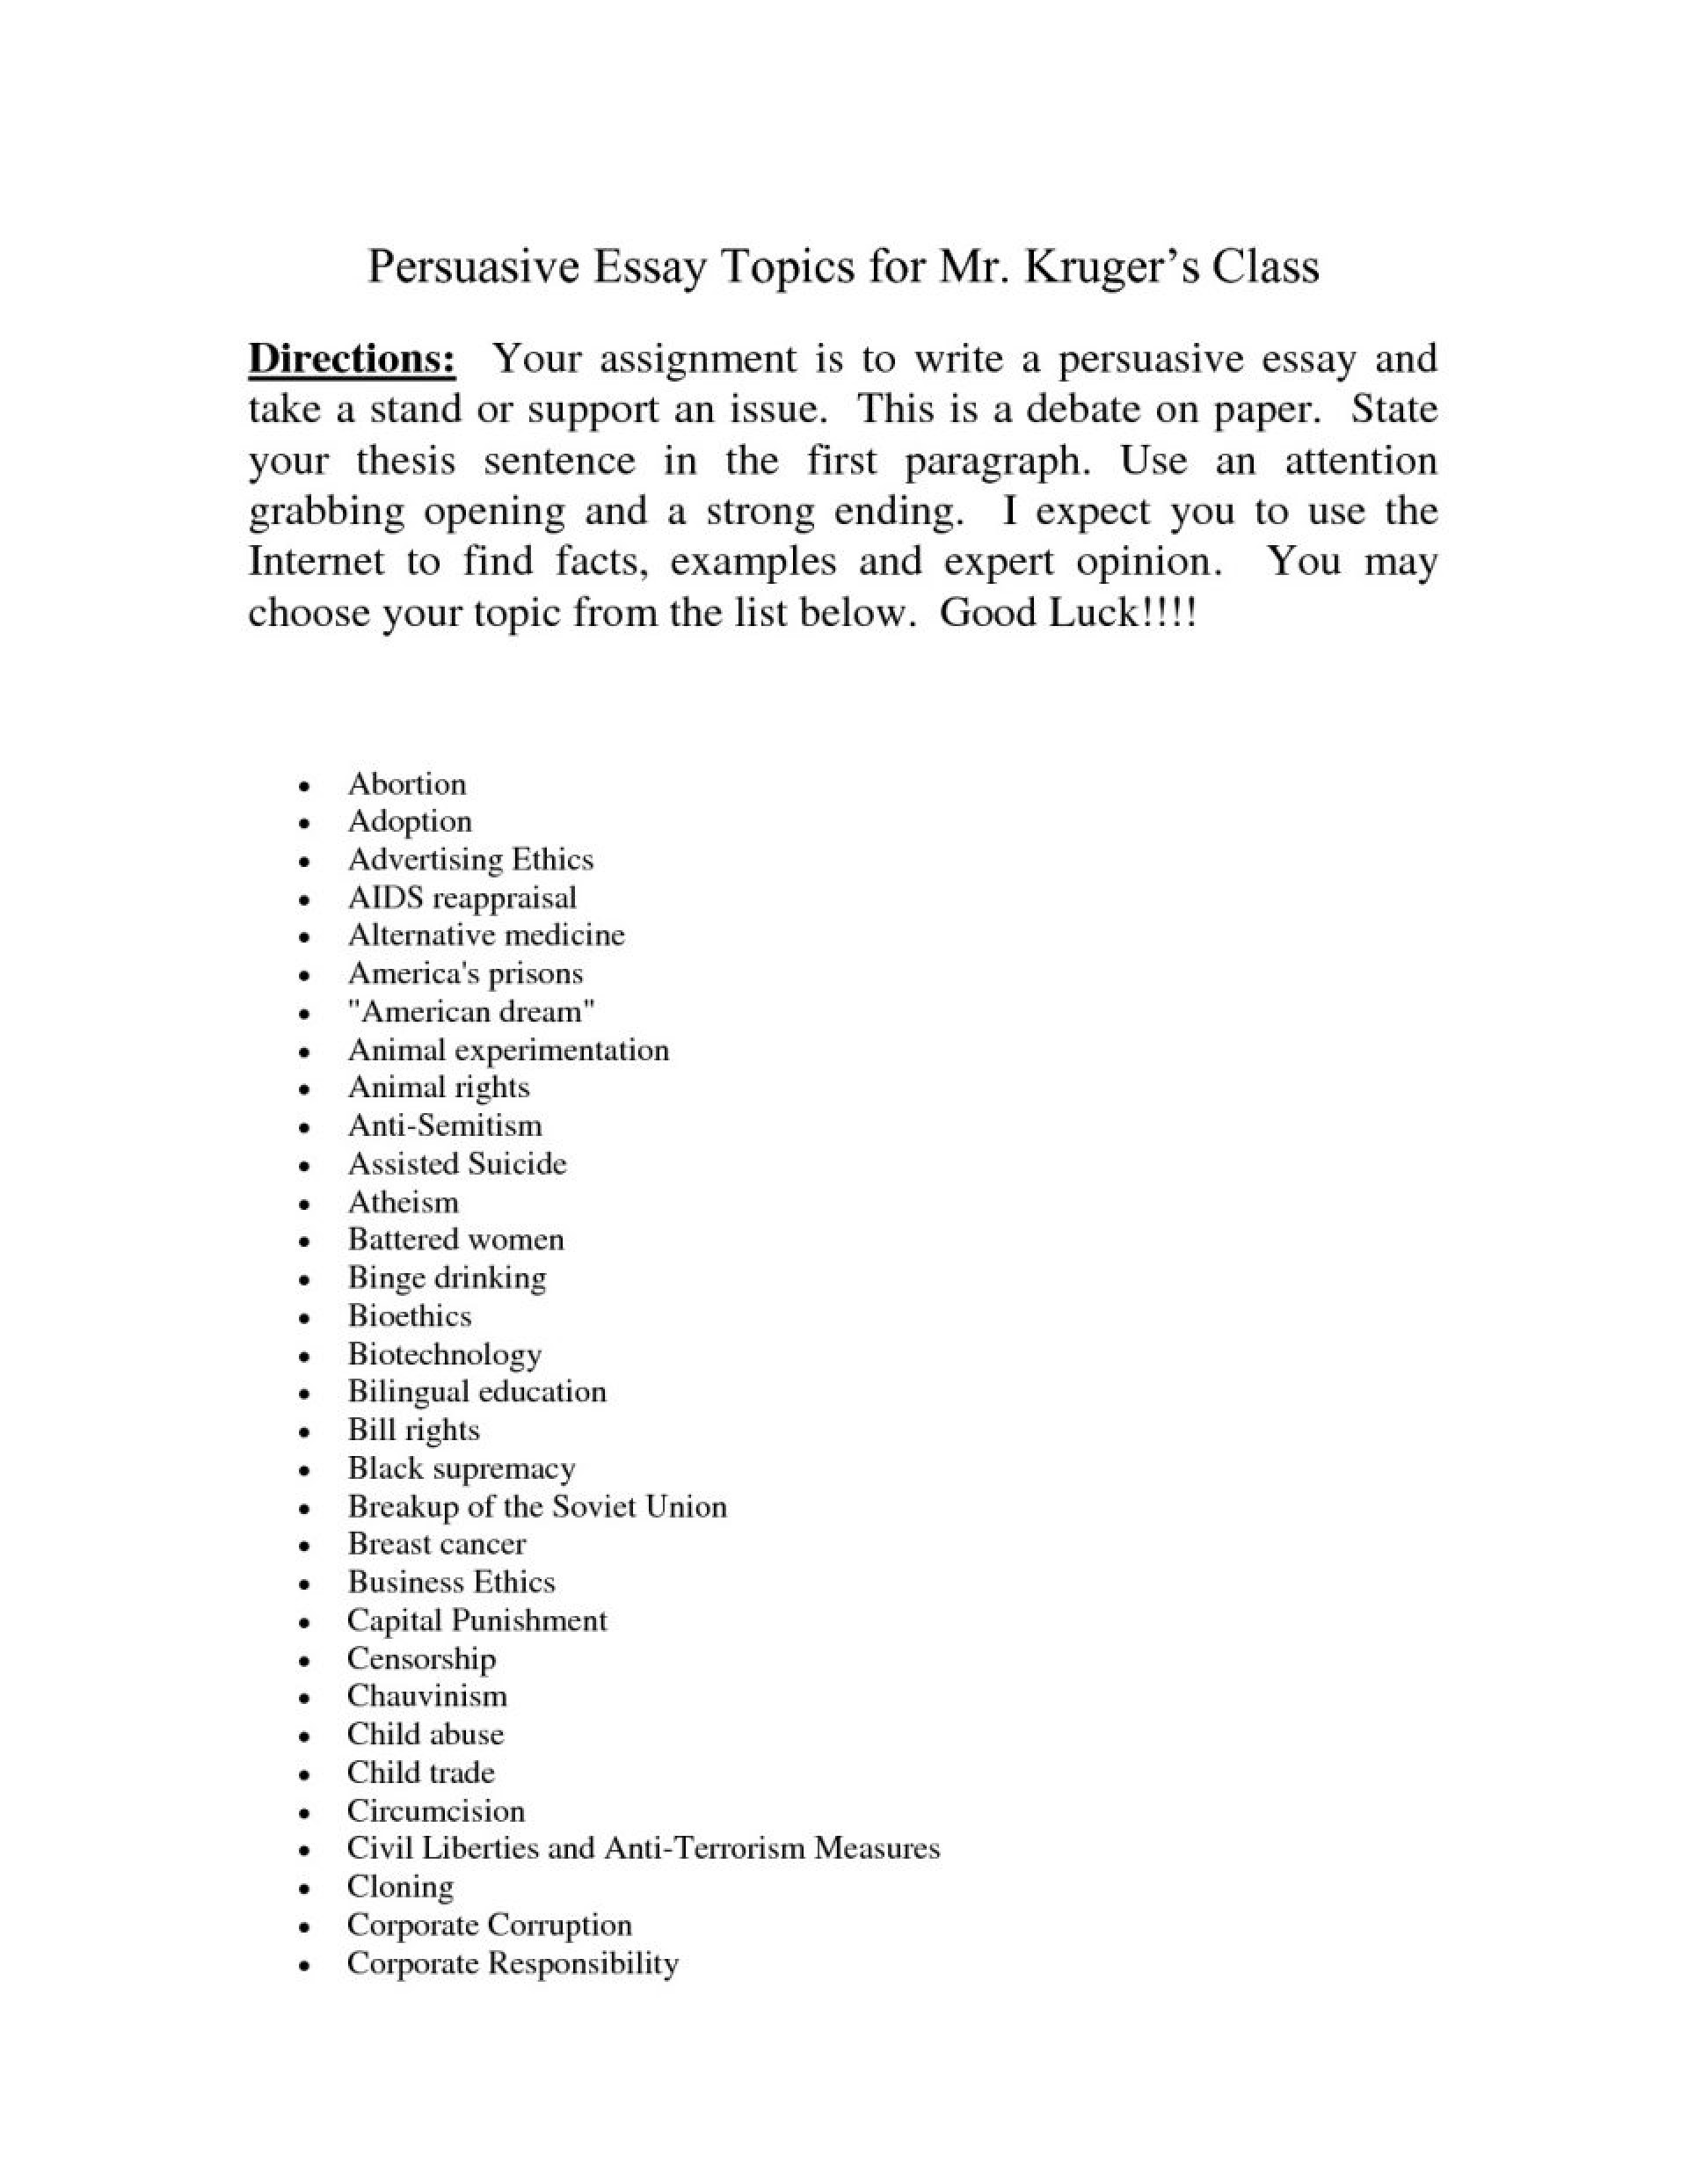 011 Research Paper Good Topic For Essay Barca Fontanacountryinn Within Persuasive Narrative Topics To Write Abo Easy About Personal Descriptive Informative Singular History Reddit Argumentative Sports 1920